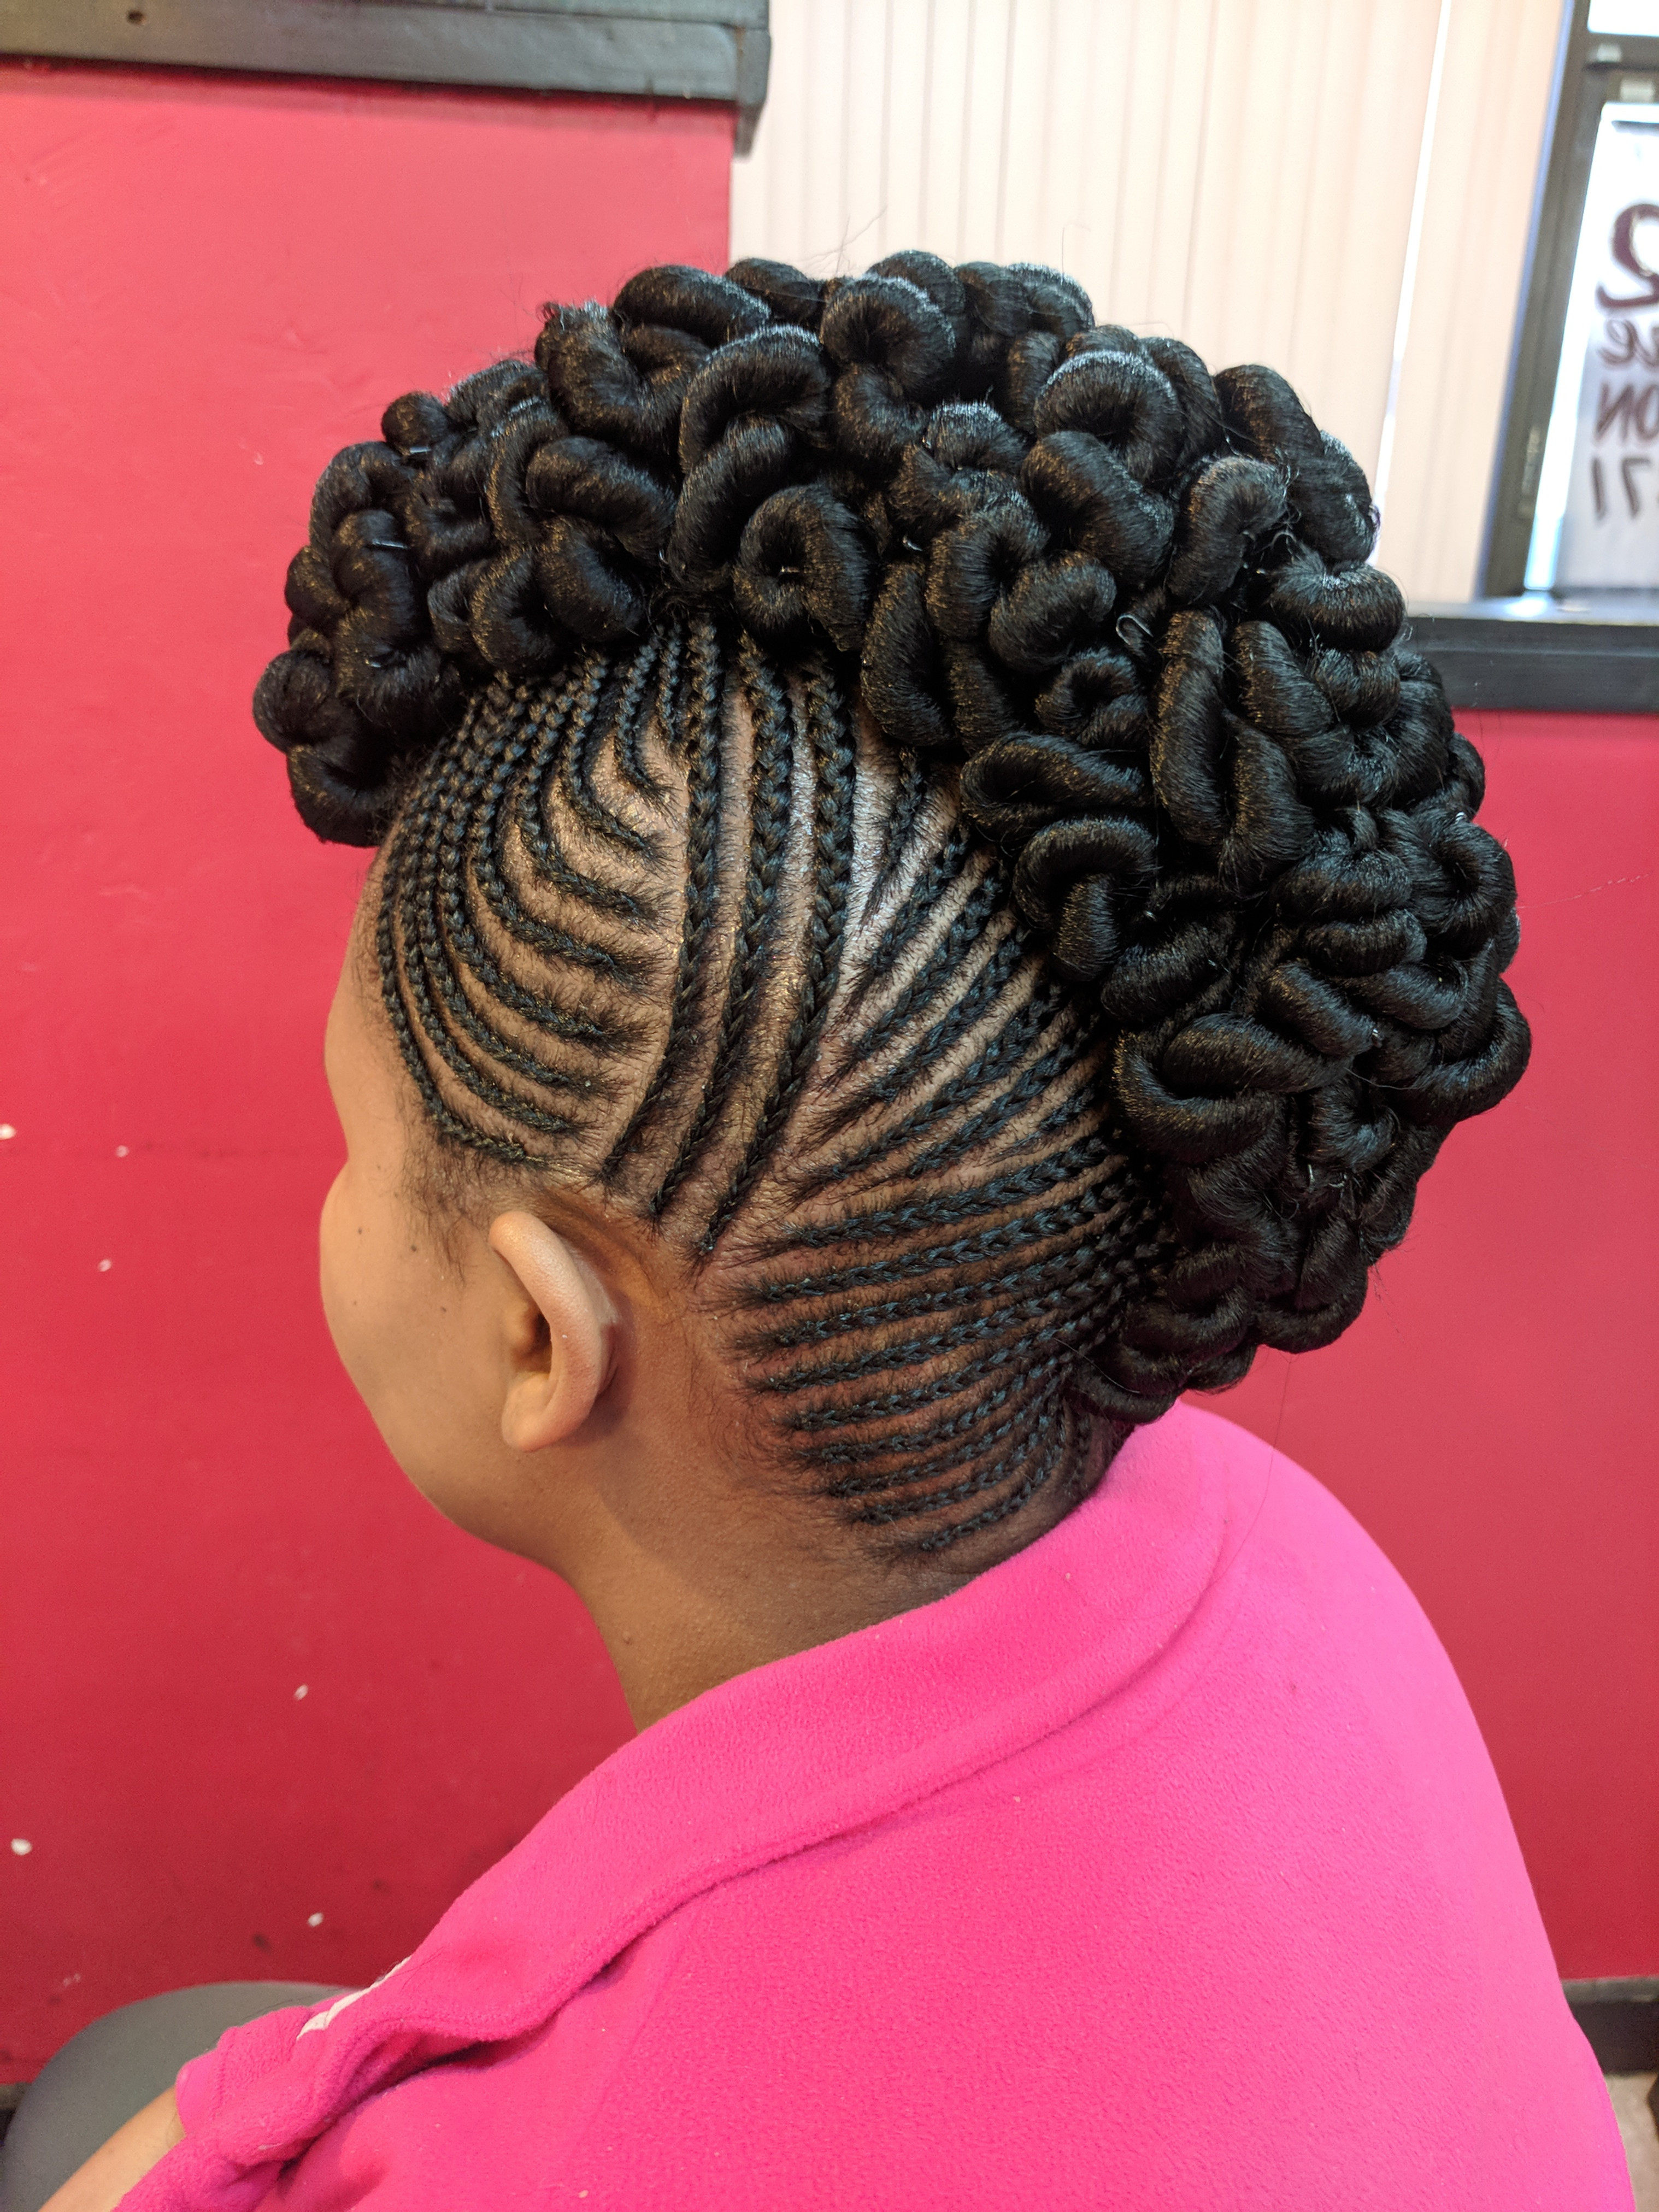 Braid Up Do with ext added